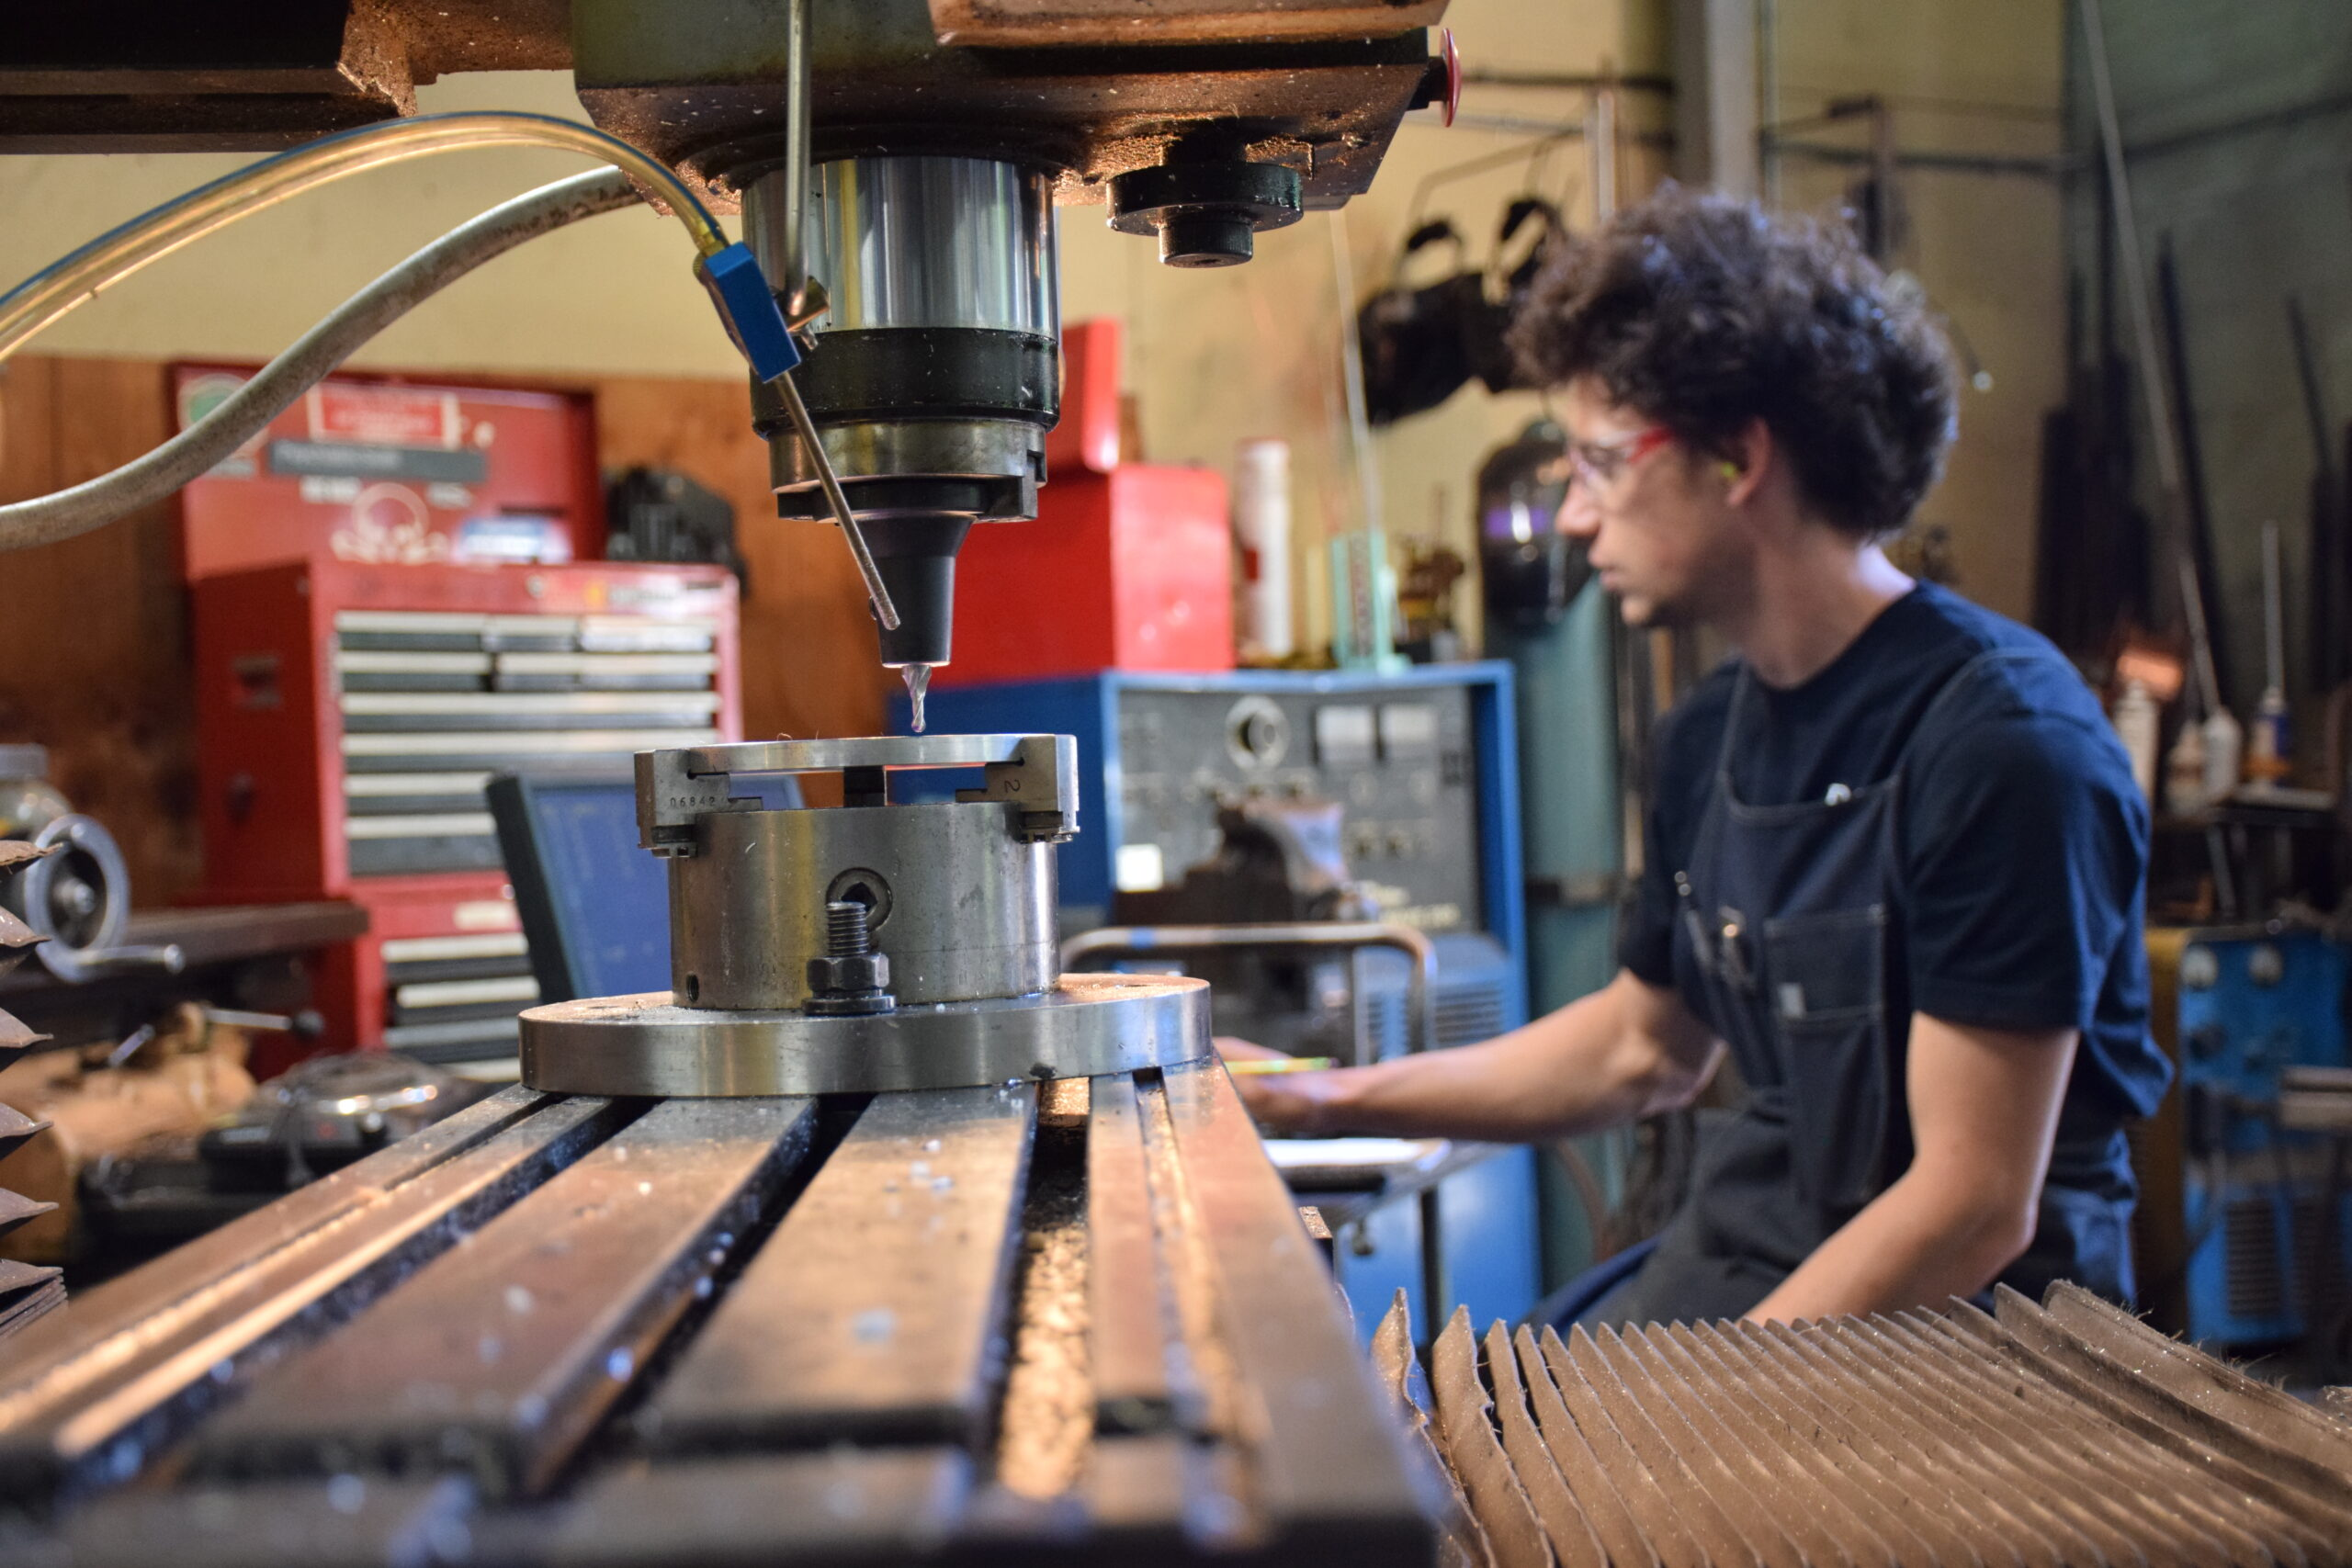 Proffessional CNC services learn more